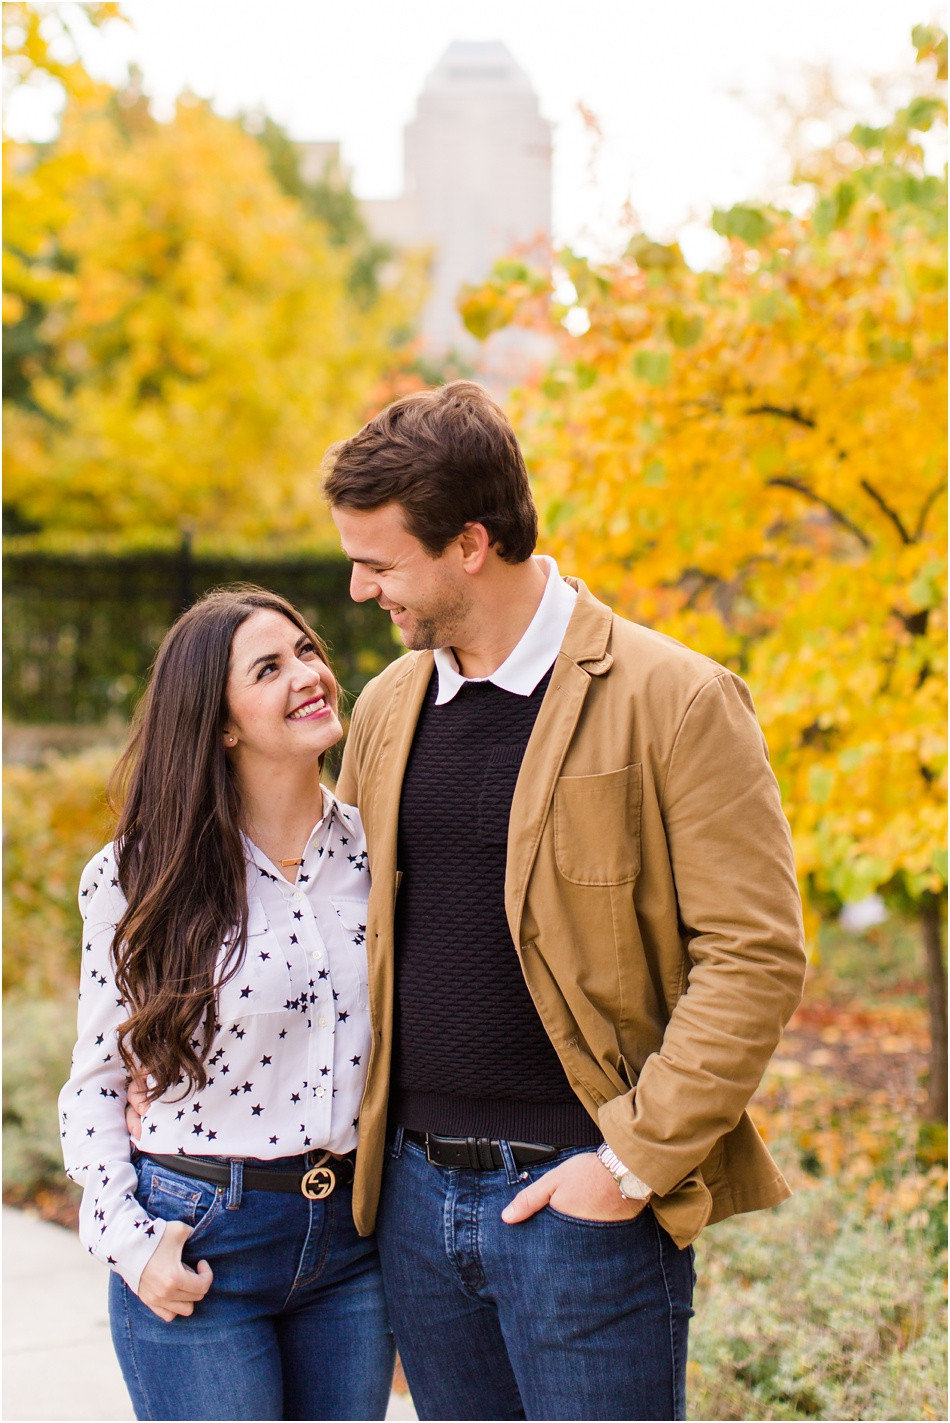 Fun-fall-engagement-pictures-indianapolis